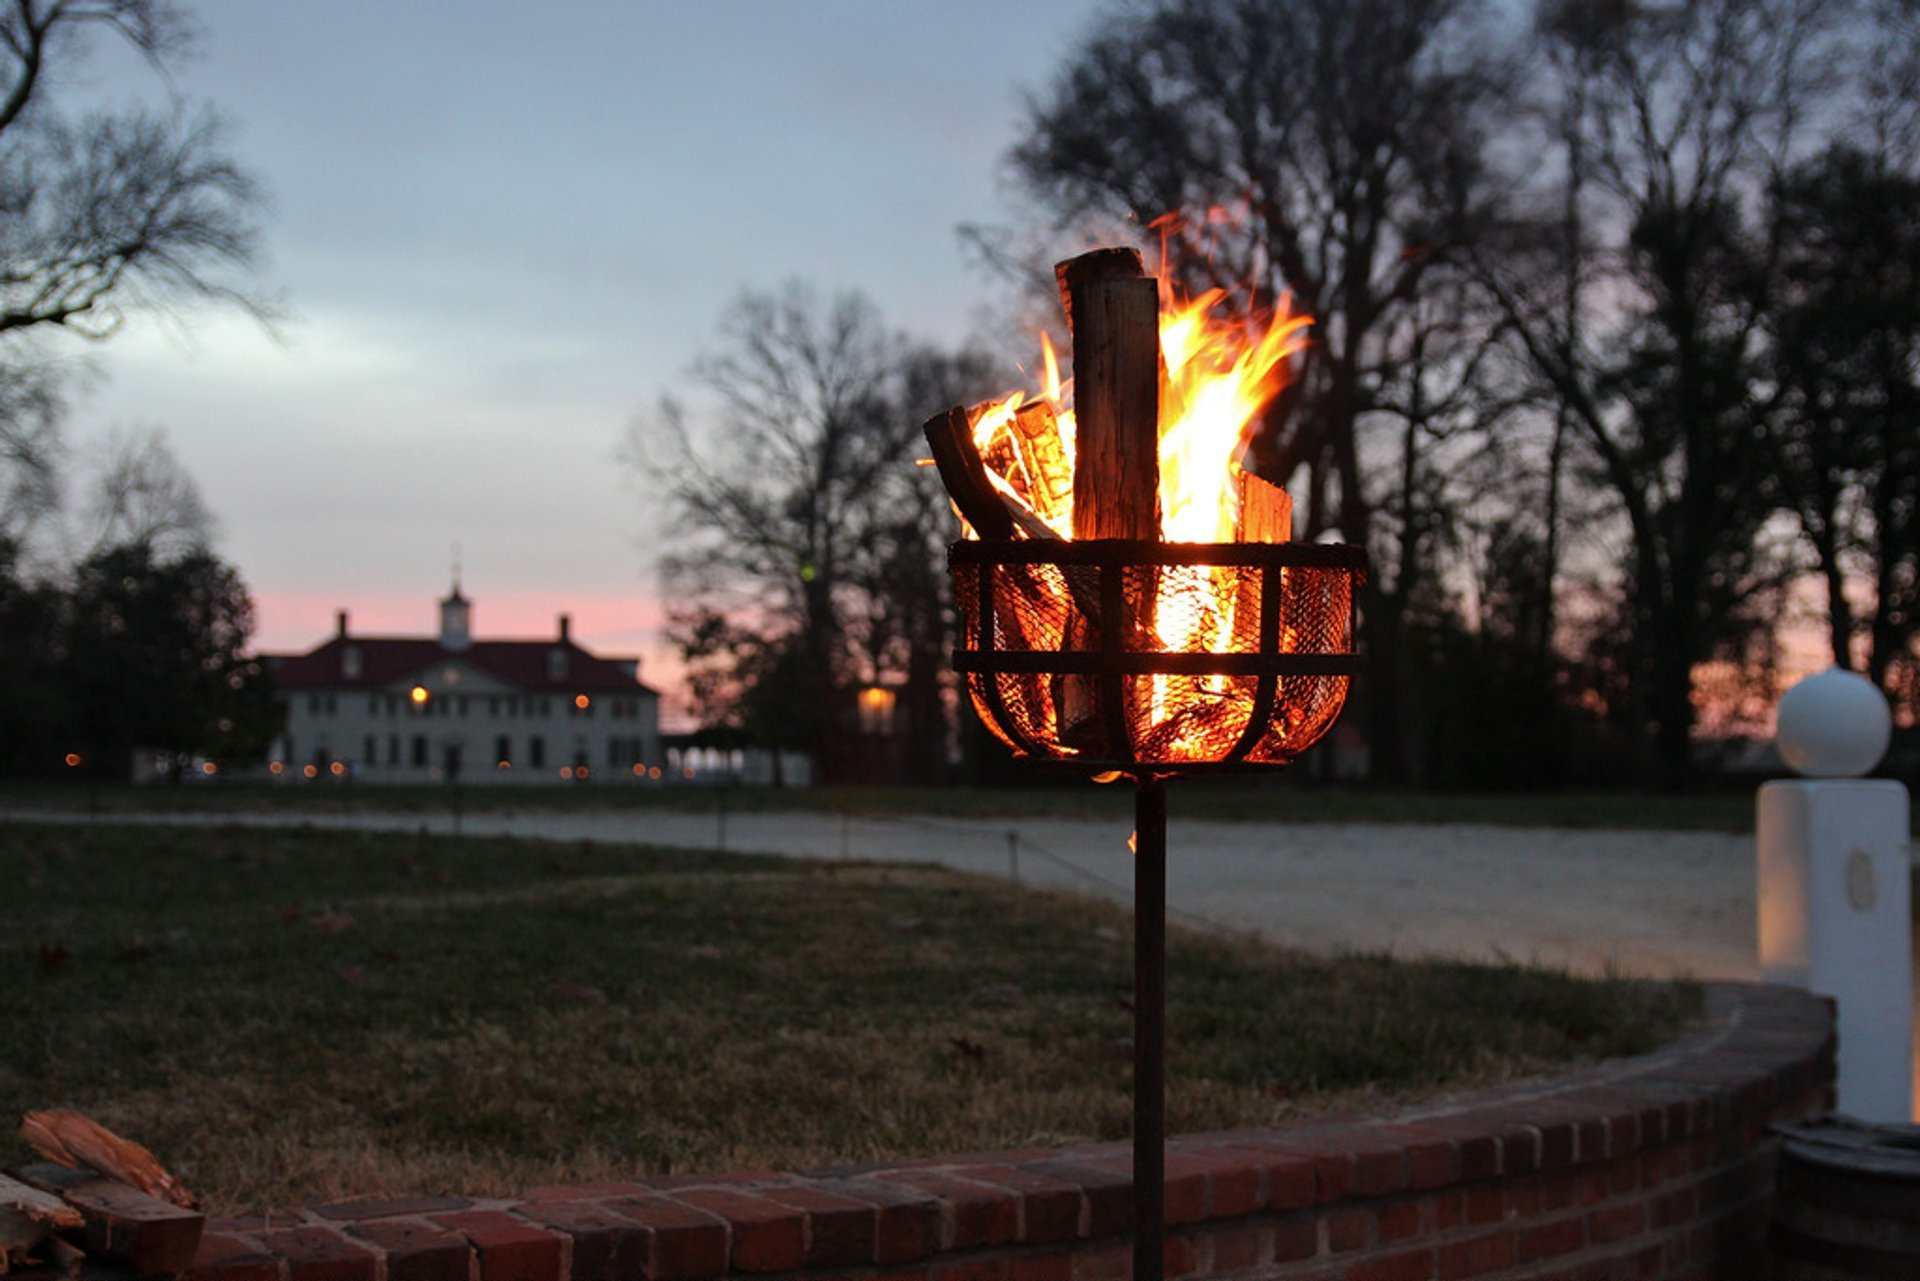 Mount Vernon by Candlelight 2019